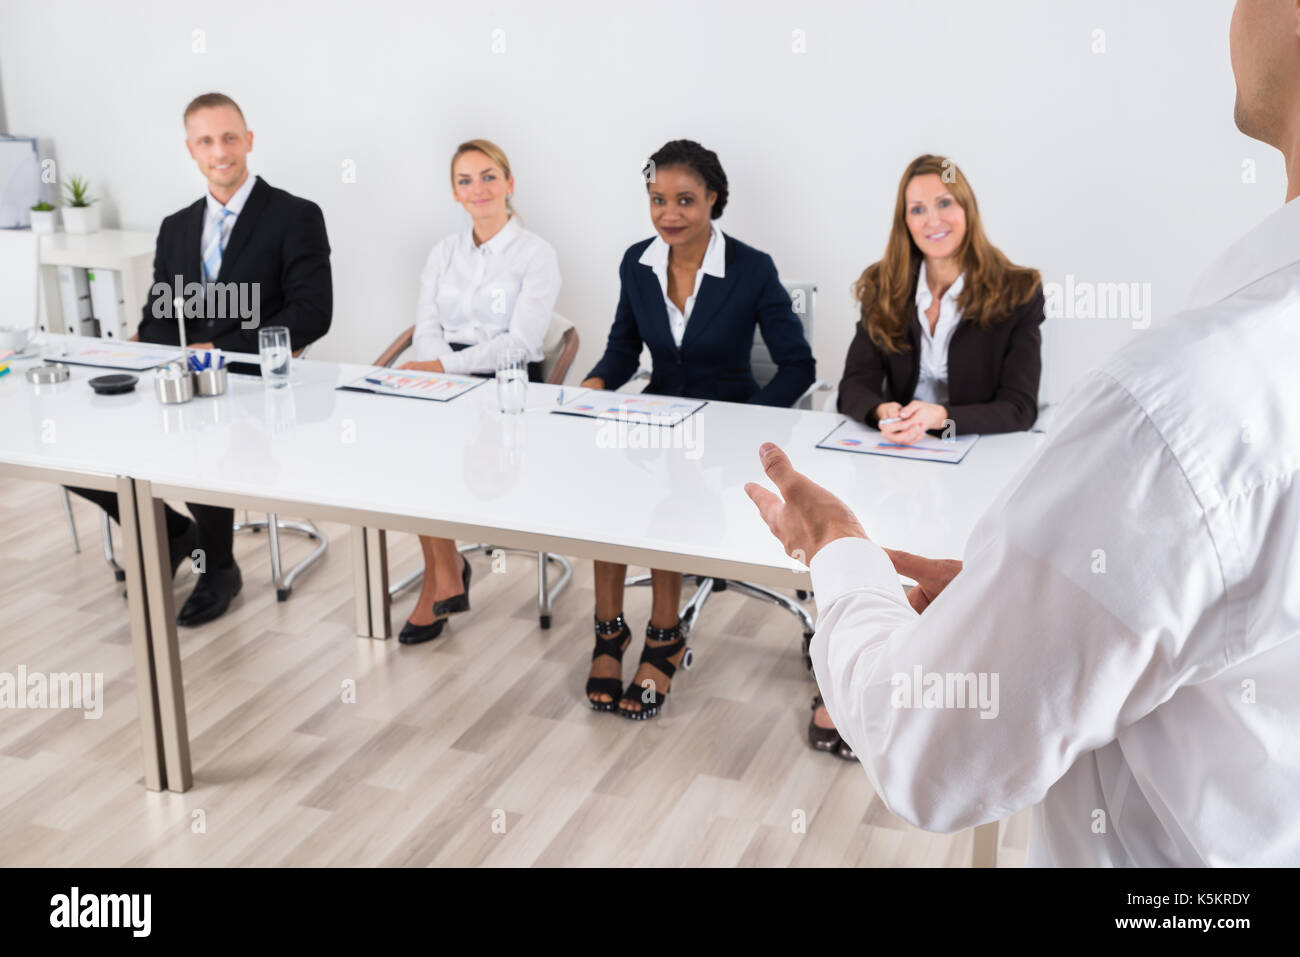 Businessperson Having Discussion With Colleague In Office - Stock Image